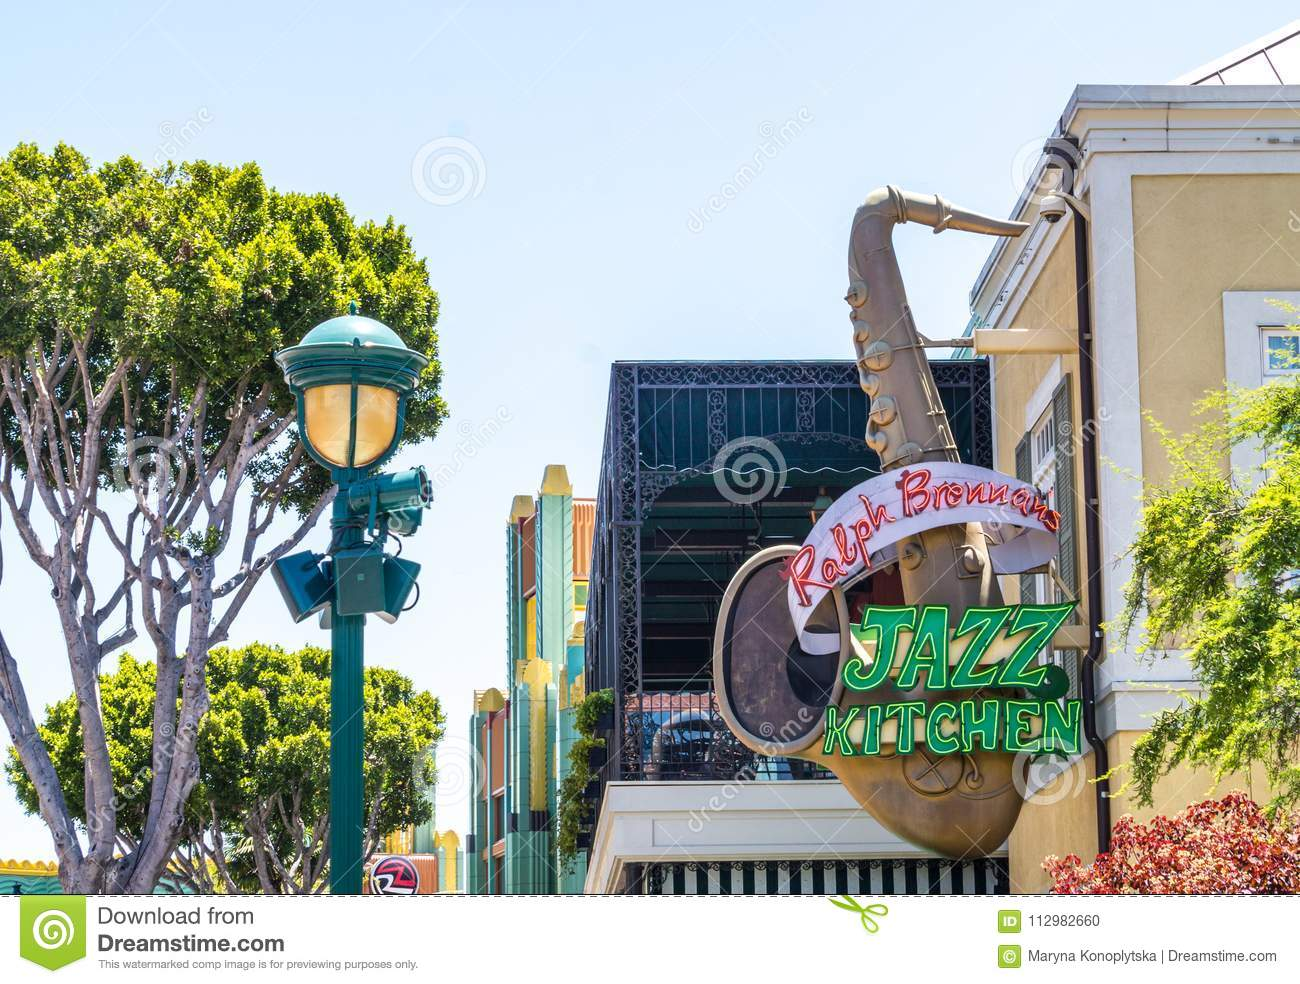 Colorful Disneyland architecture in Anaheim, Los Angeles, California, USA